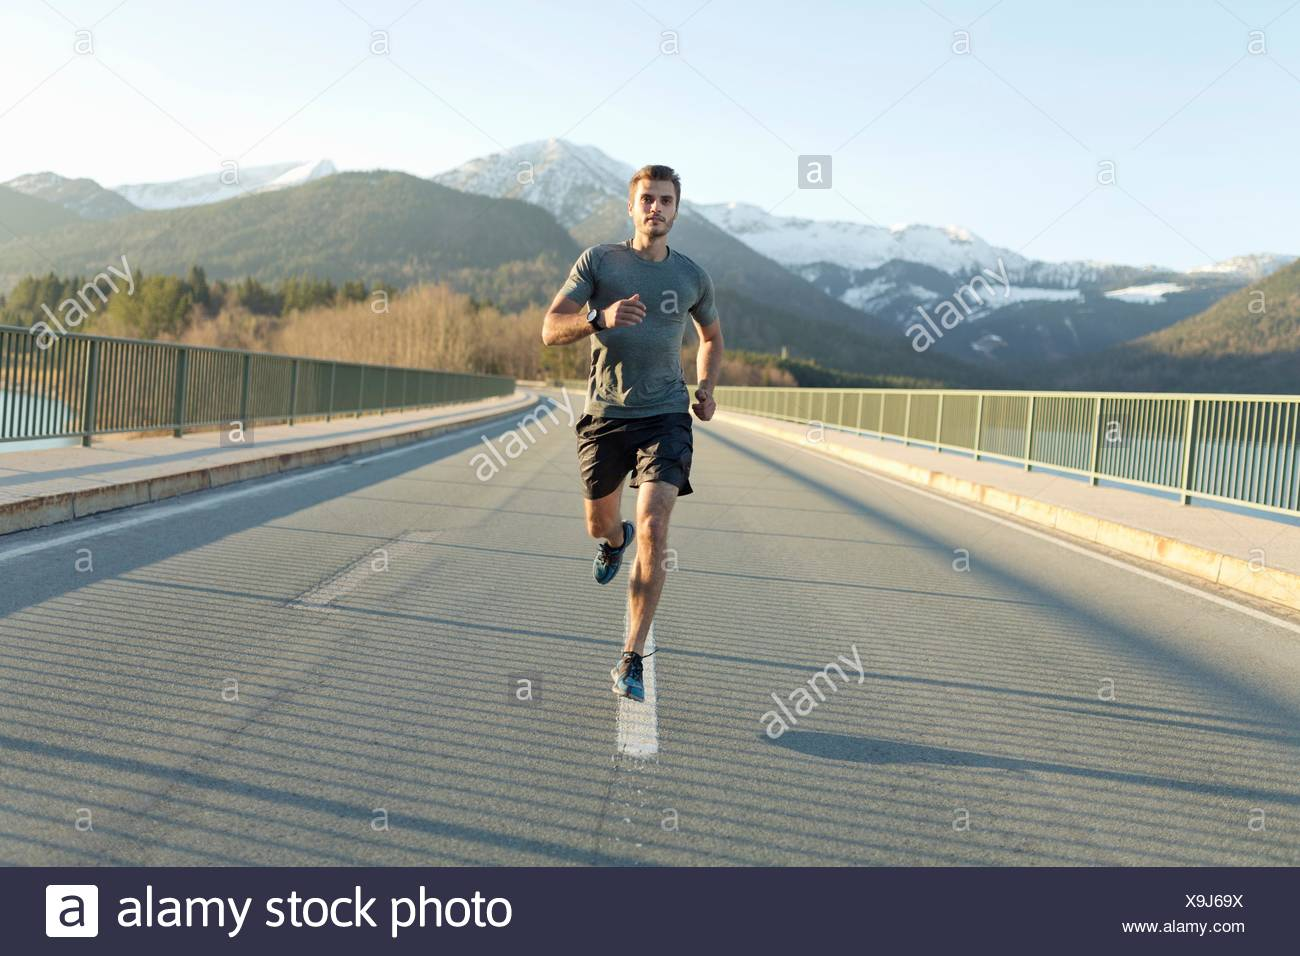 Young man, running on road, mountains behind him, front view - Stock Image